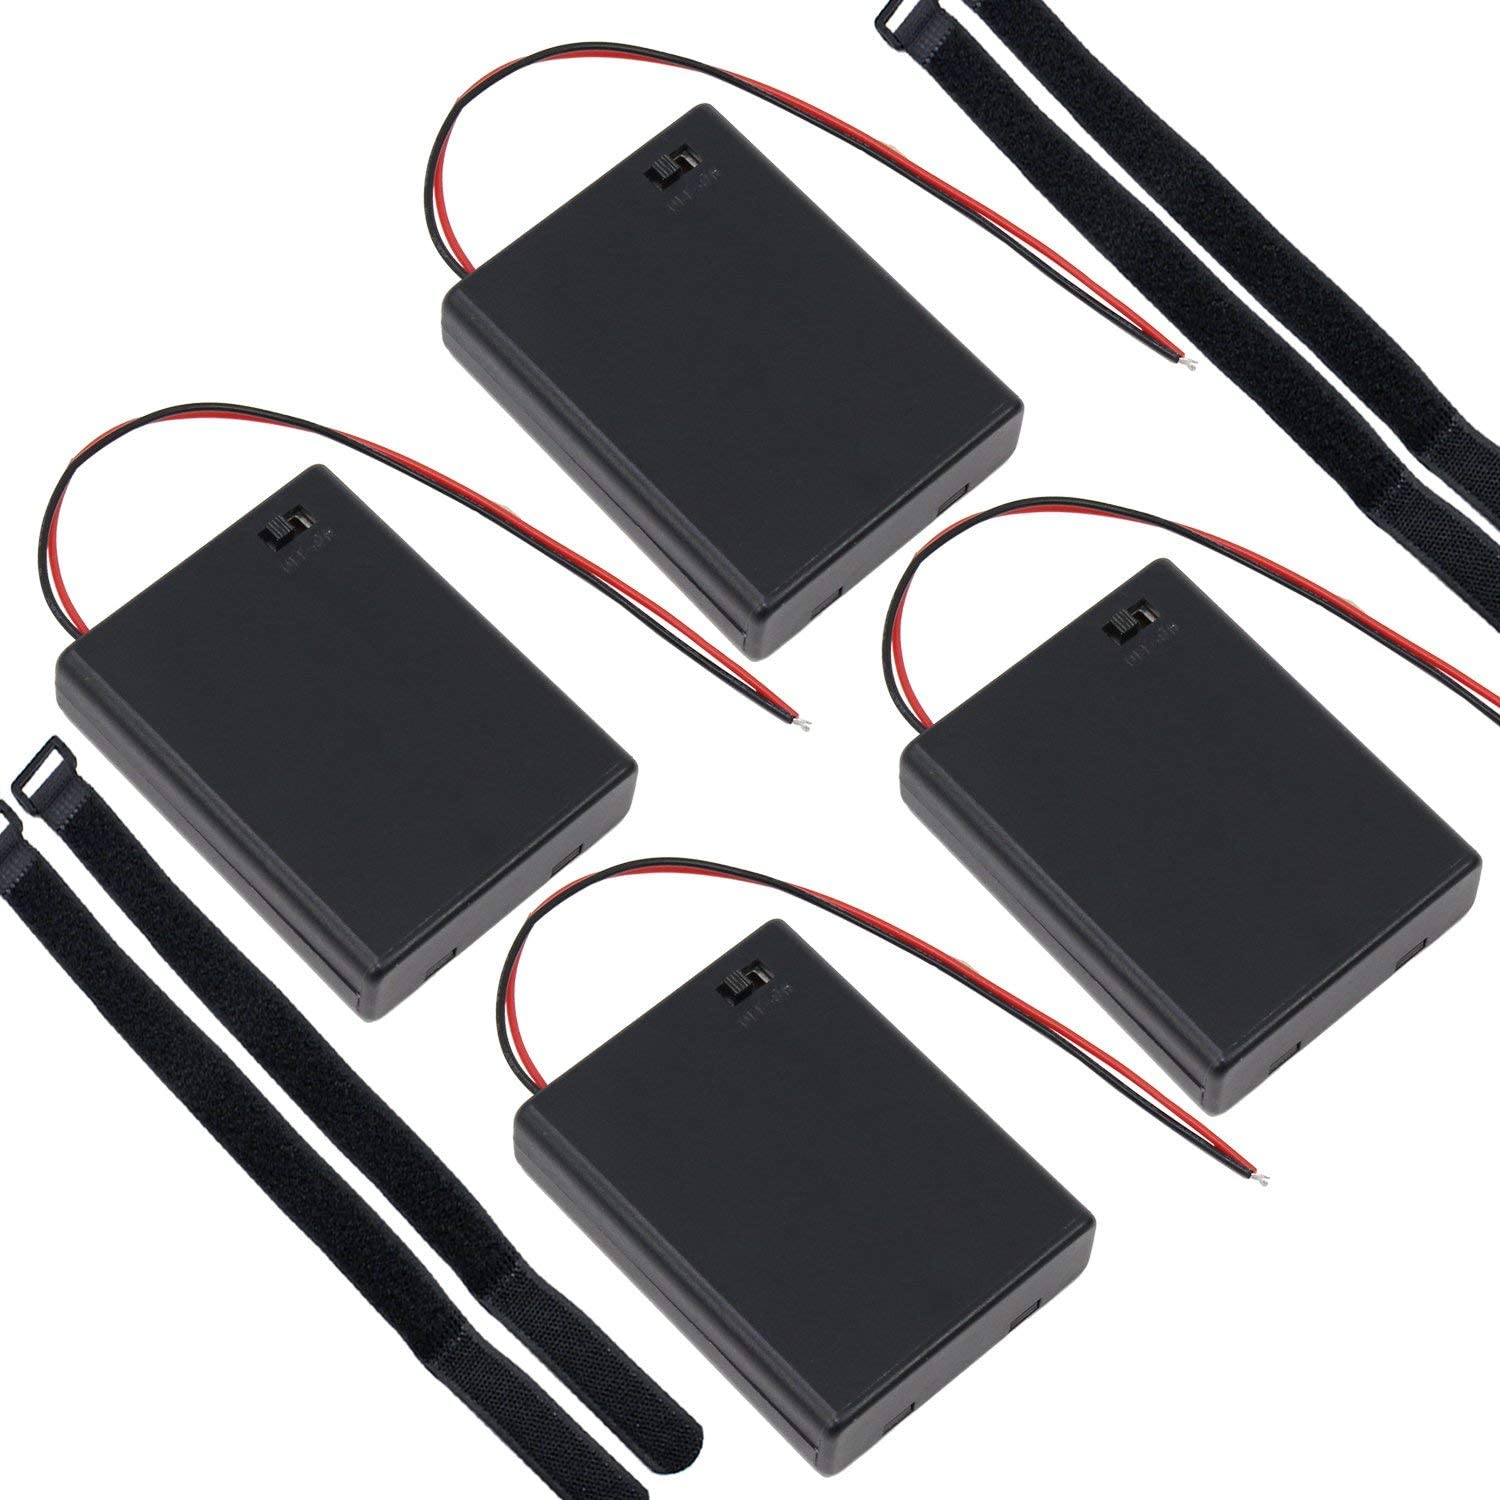 abcGoodefg 4 x AAA Battery Holder Case Storage Box with ON/Off Switch with Wire Leads and Self-Adhesive Cable Ties 4 Pack